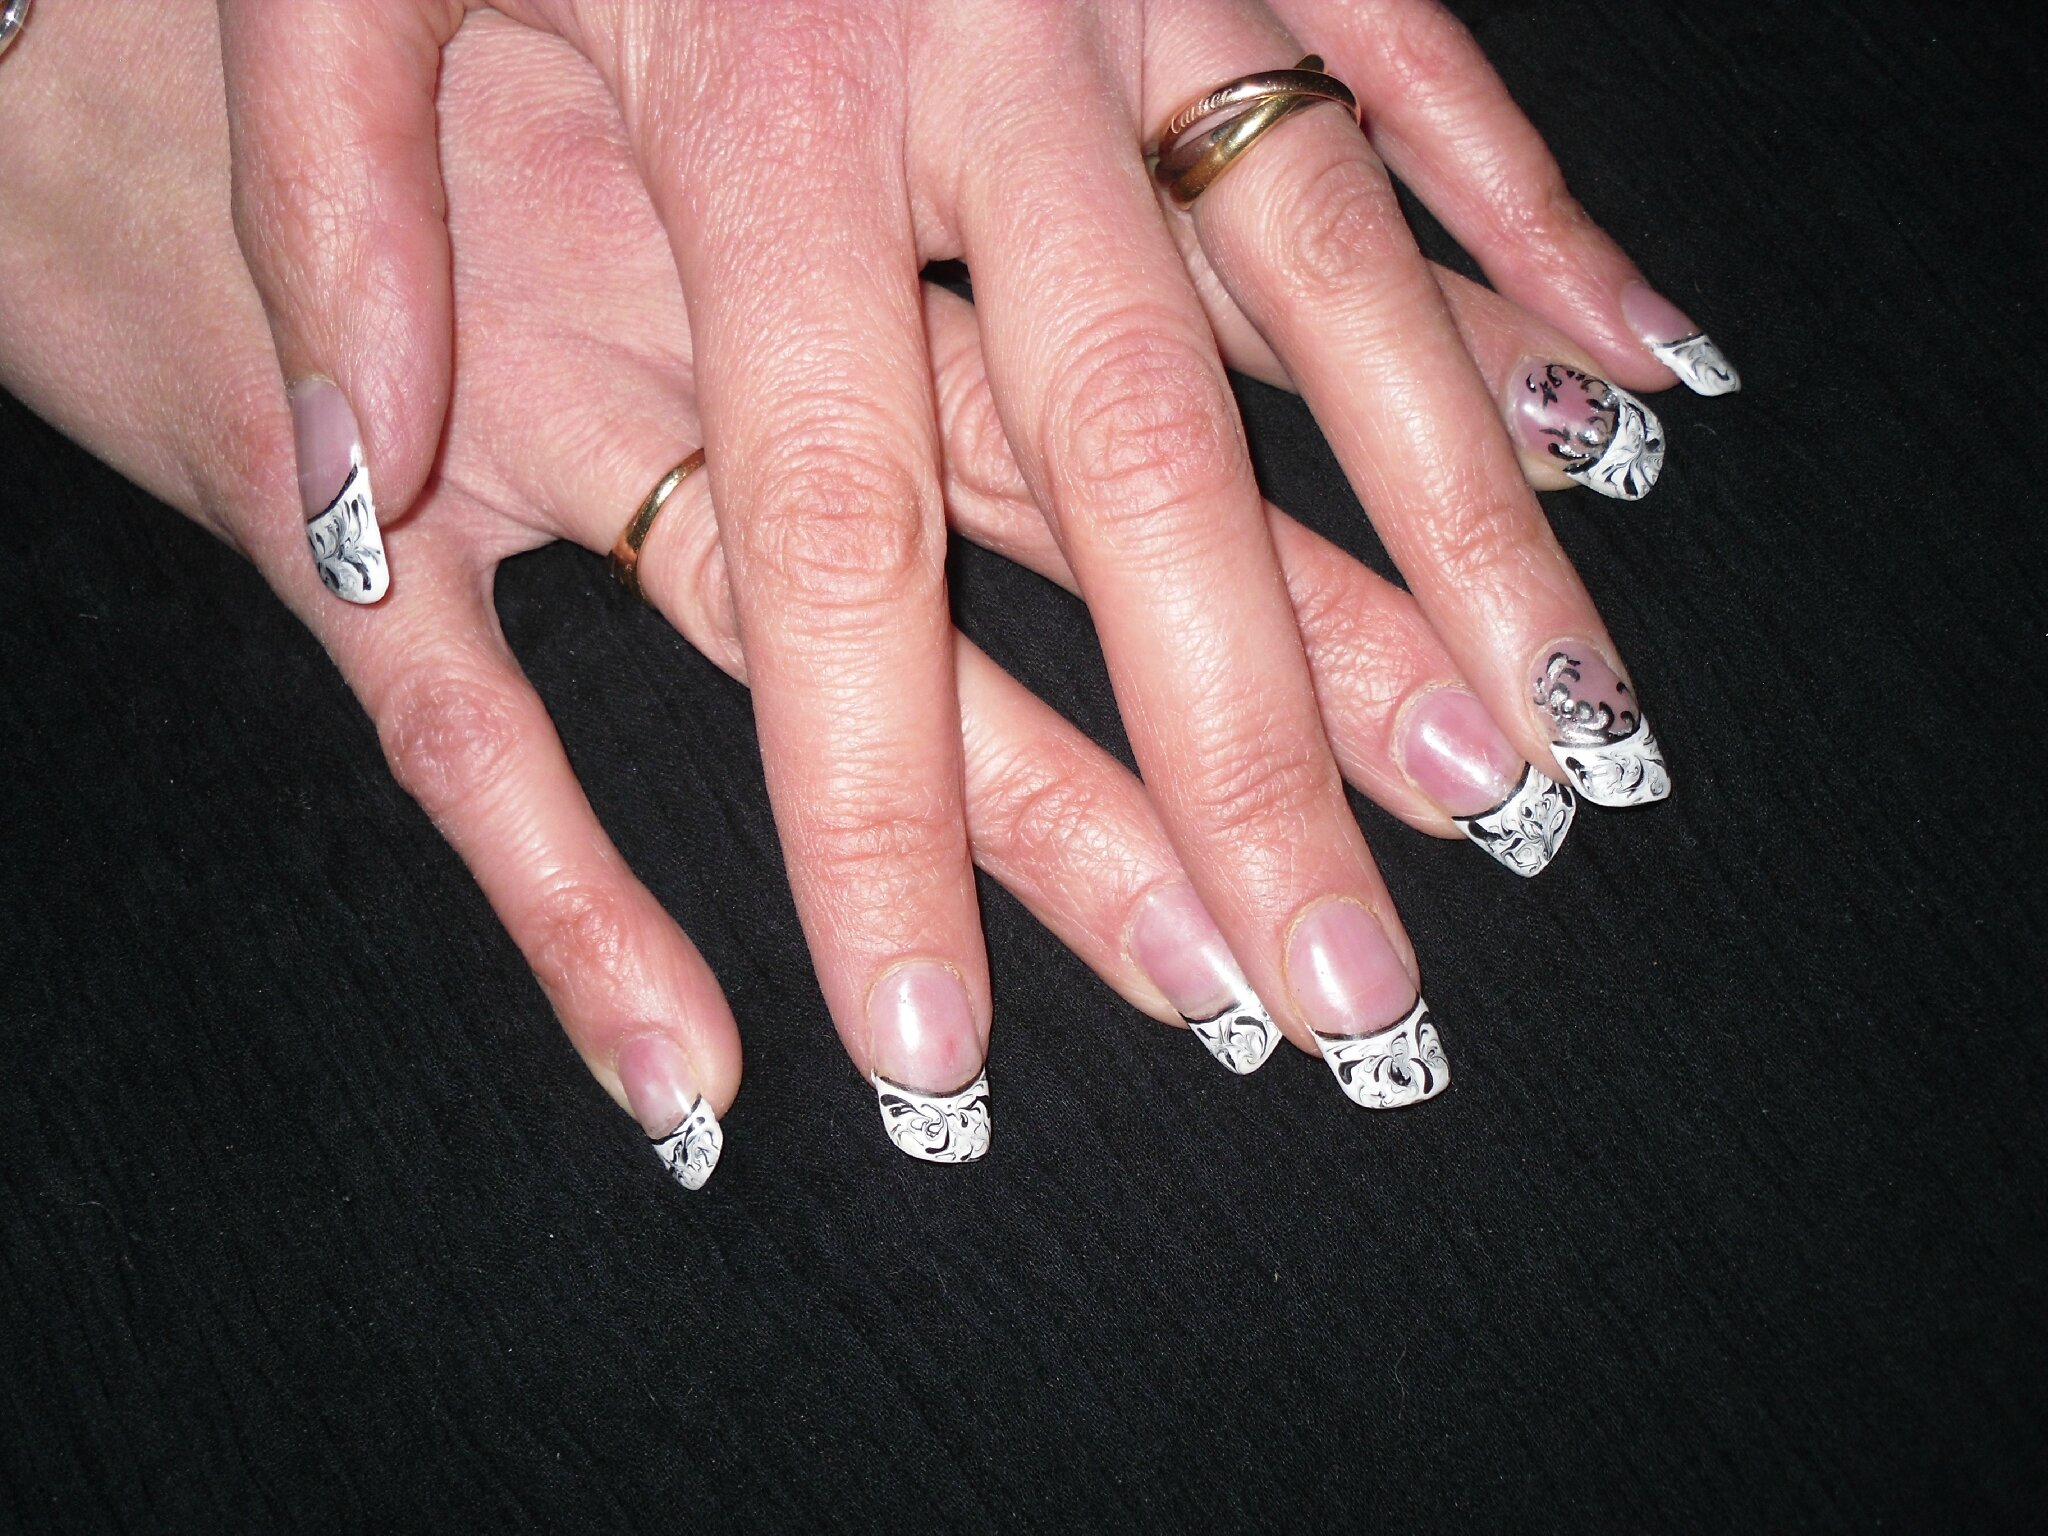 Modeles d ongles fashion designs - Modele d ongle ...